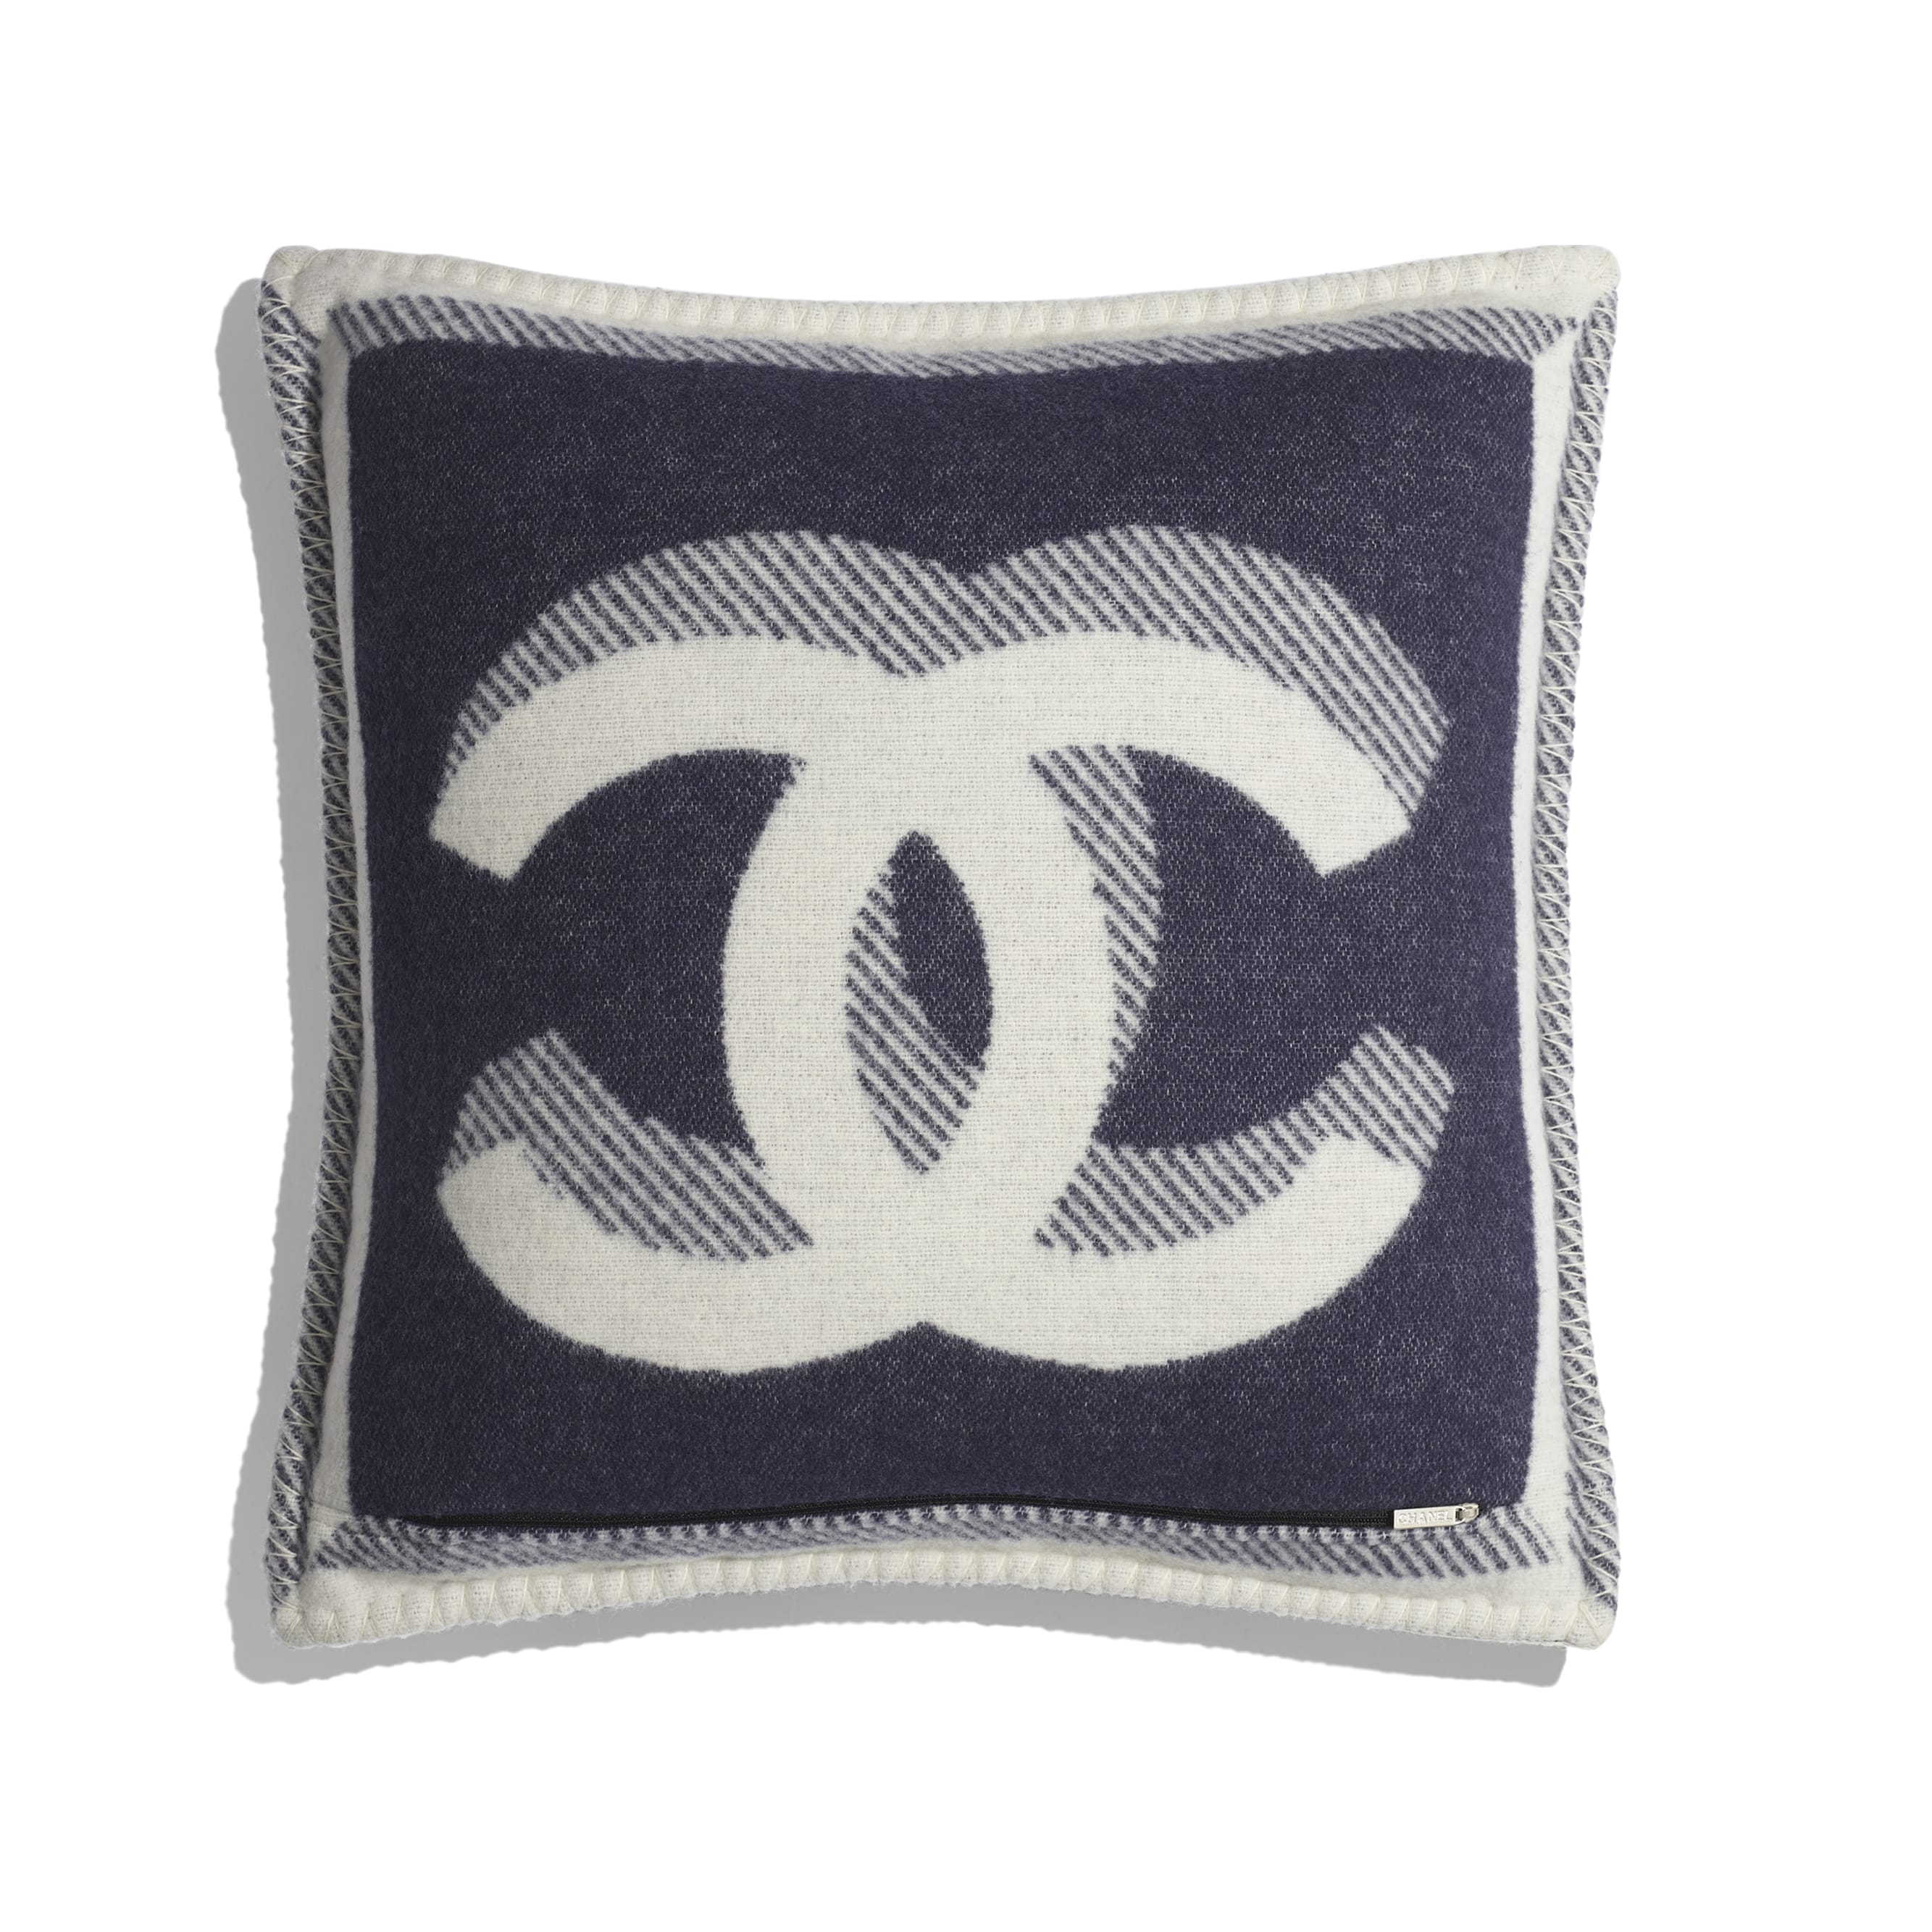 Pillow - Ivory & Navy Blue - Wool & Cashmere - Alternative view - see standard sized version